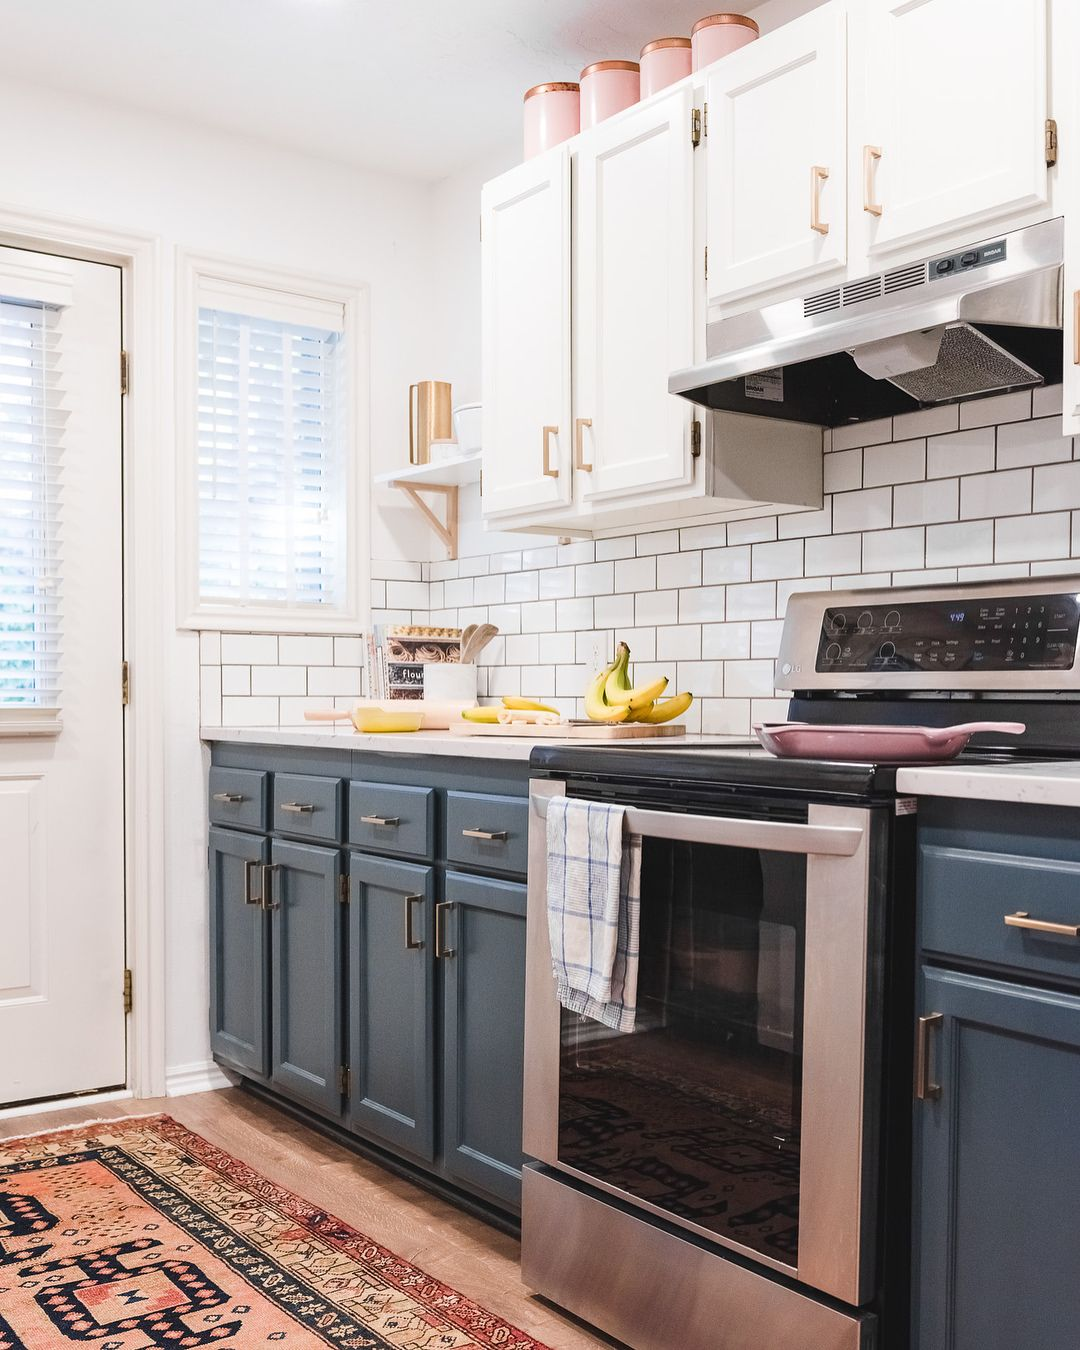 How do you improve a small galley kitchen with poor lighting